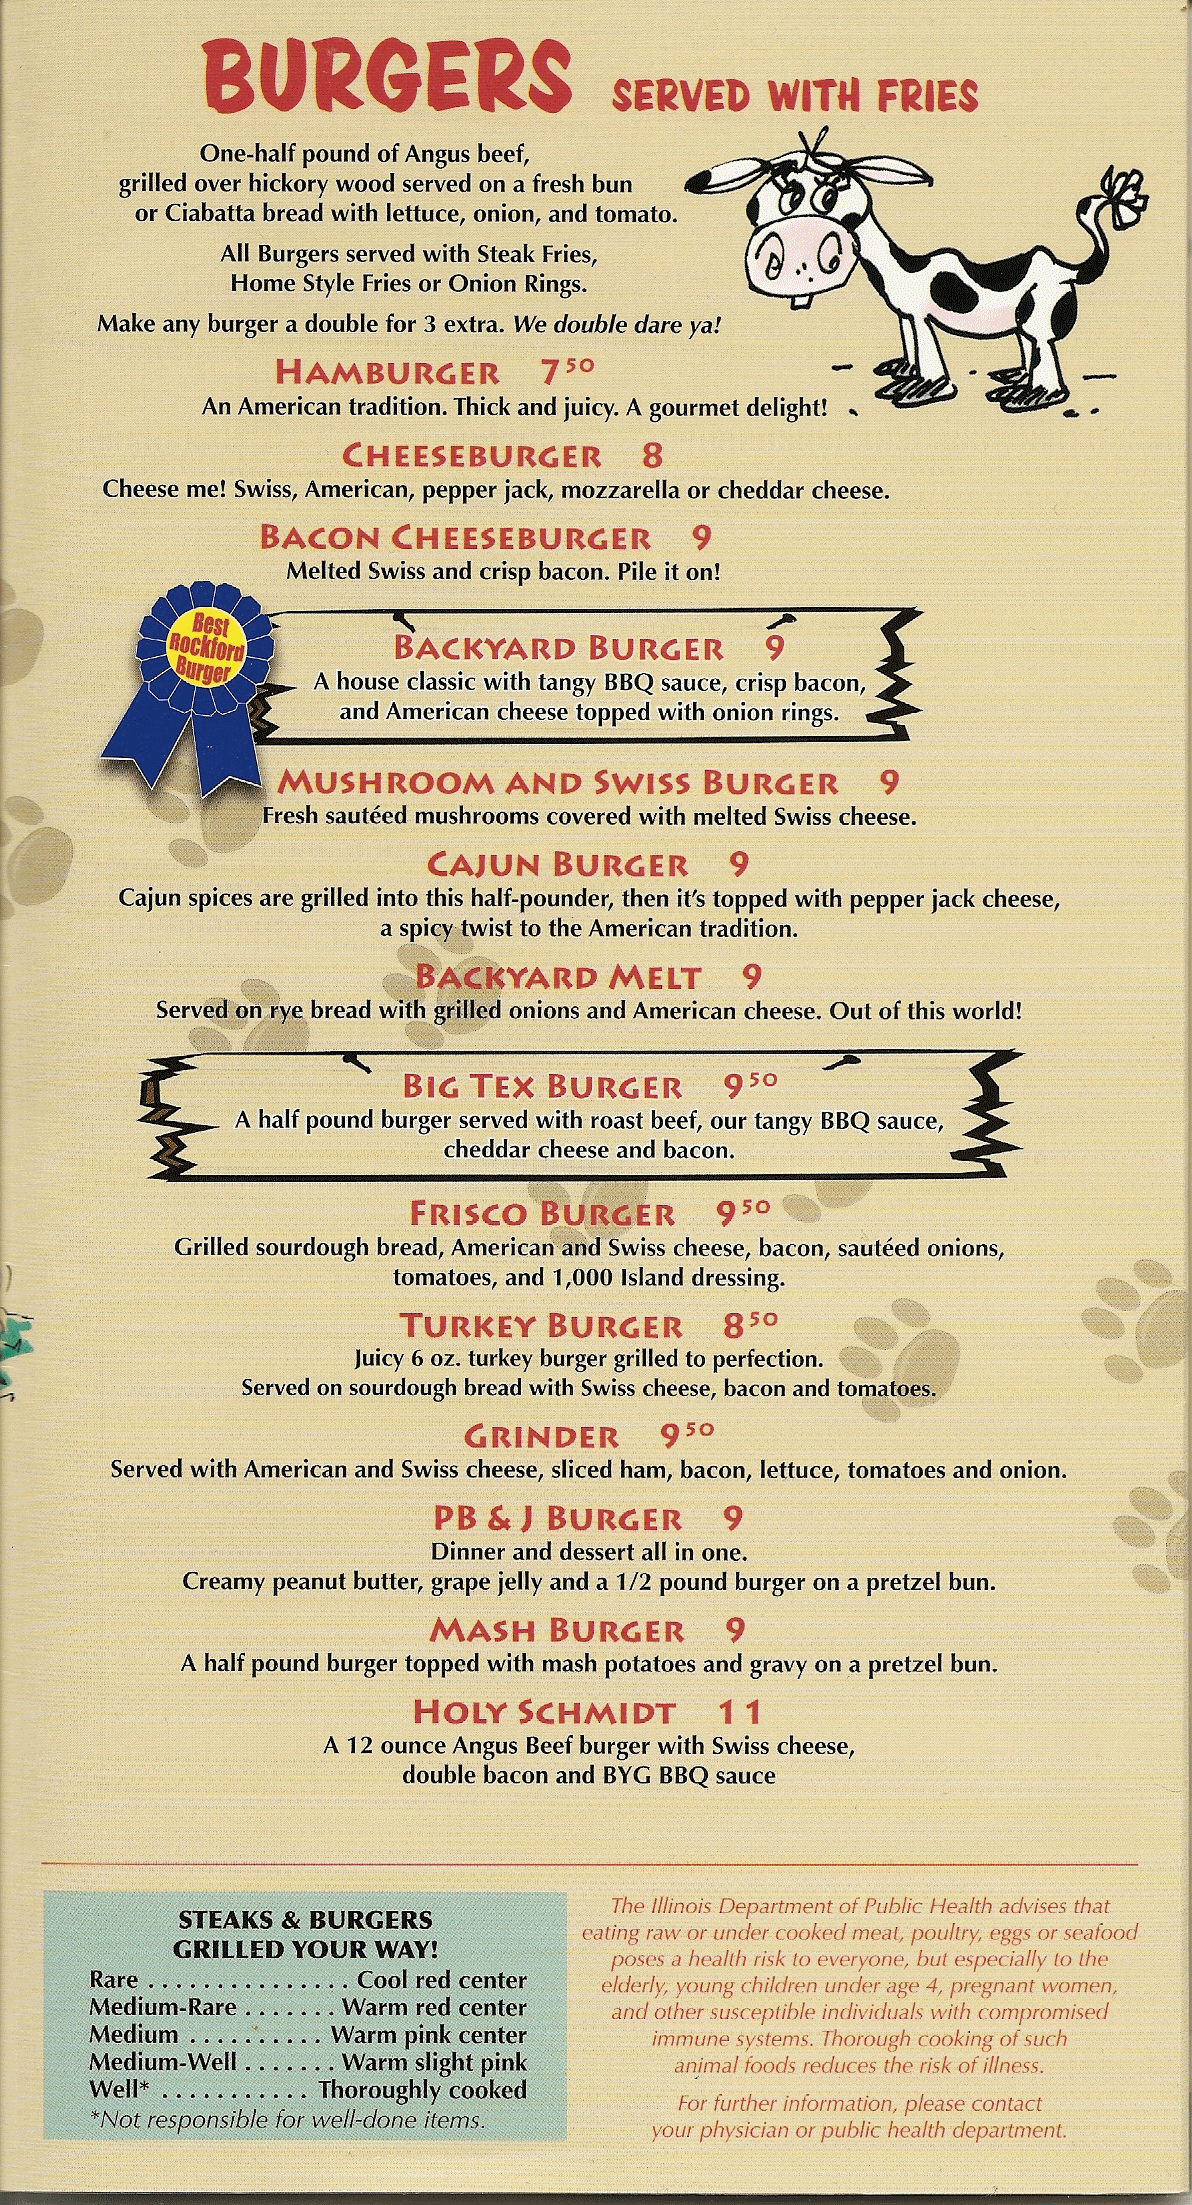 Backyard Grill and Bar Menu | Backyard Grill and Bar